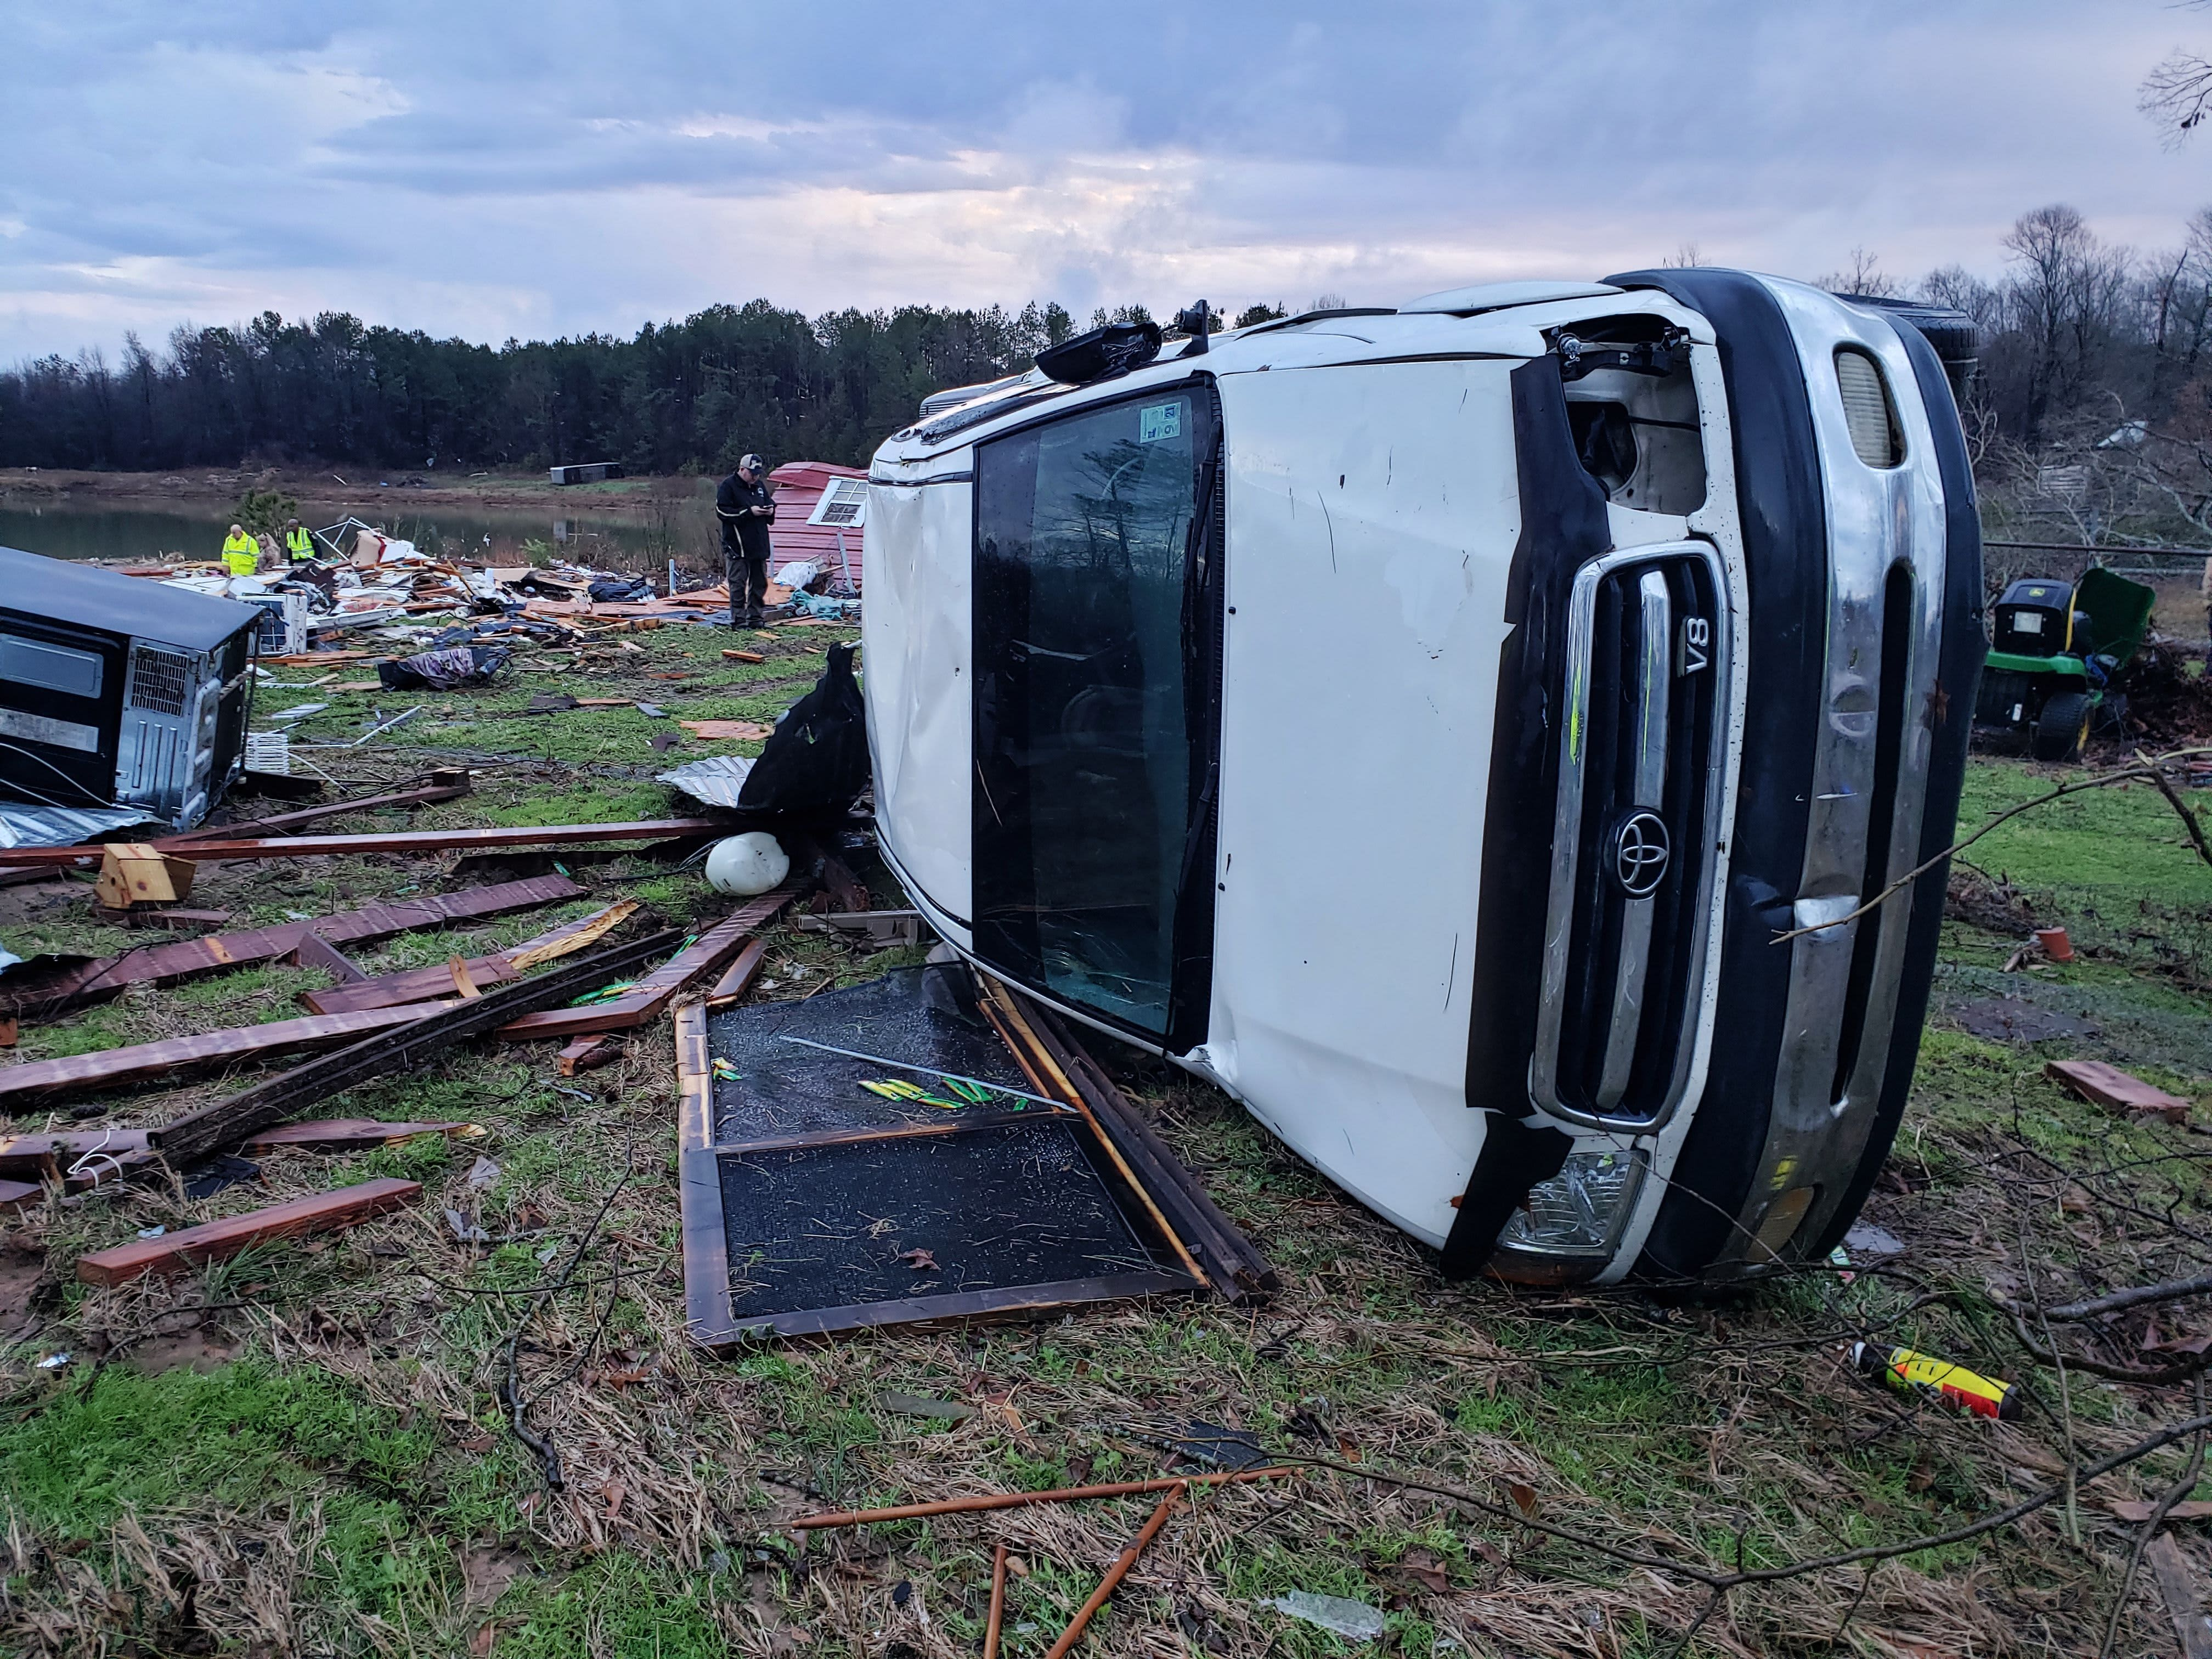 Death toll rises to at least 11 from severe storm sweeping through the South